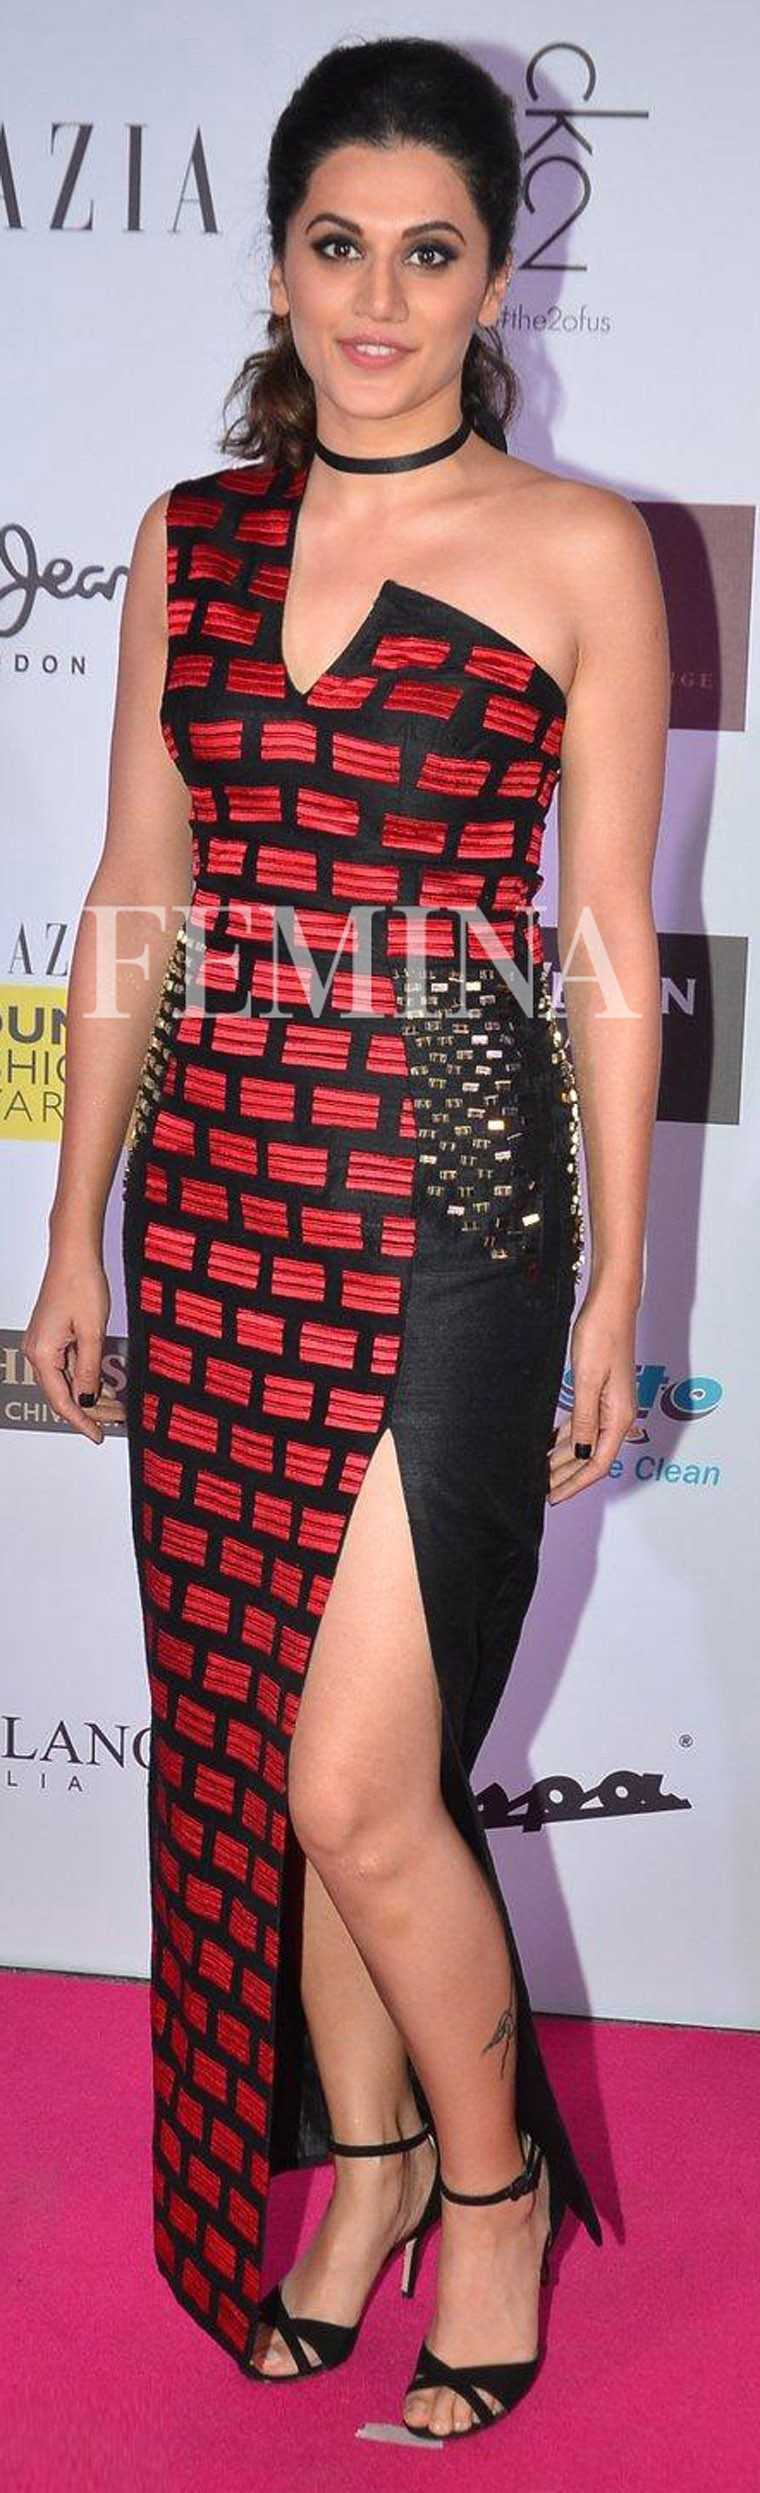 TAAPSEE PANNU Taapsee's edgy Uravashi Joneja sheath gown needed an equally cool accessory to complete the look—her skinny leather choker. A high-ponytail kept the hair away from her face and ensured all the attention was on the brick-patterned bodice.